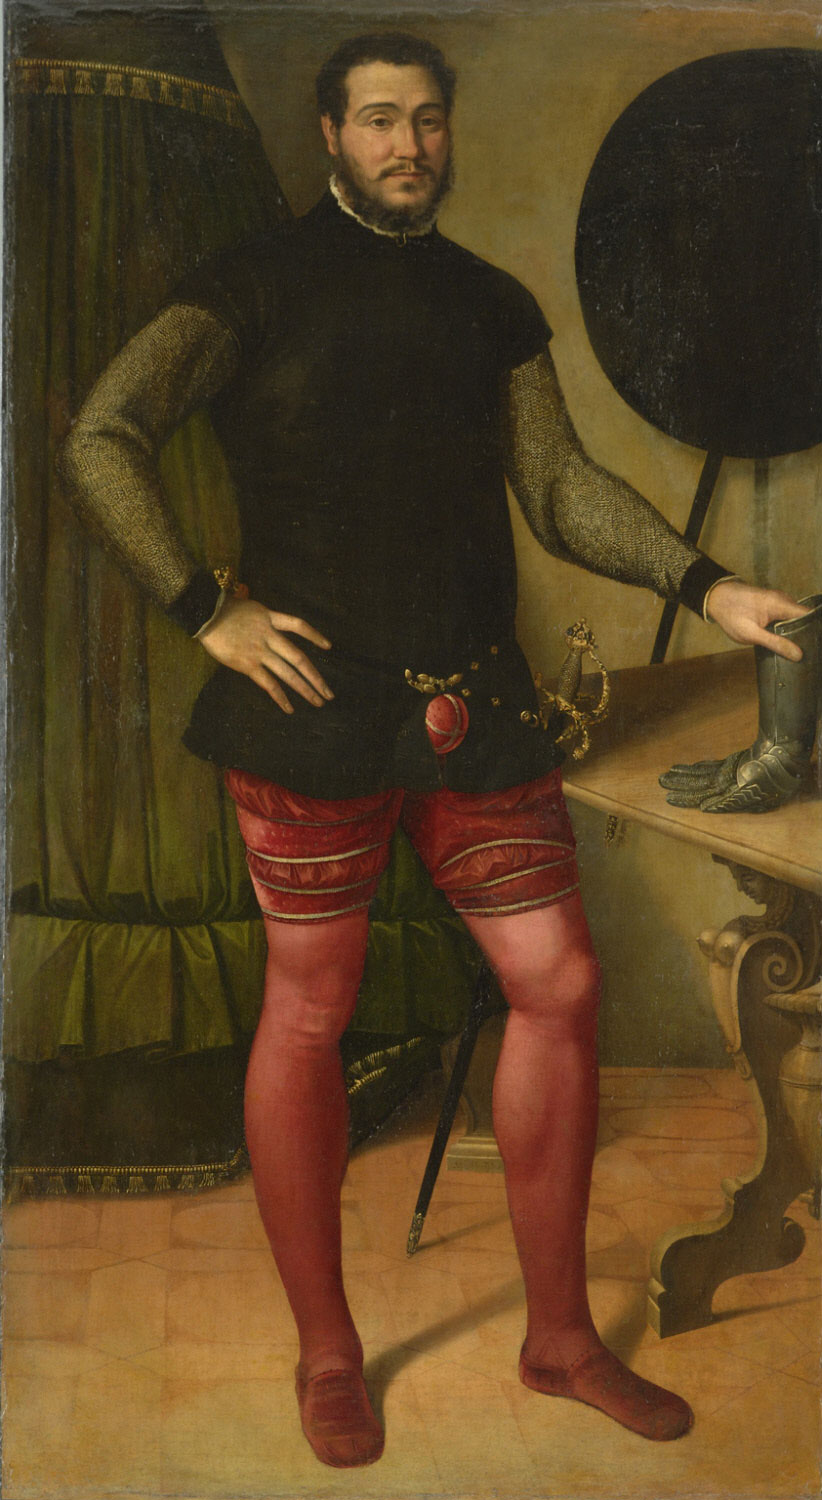 Portrait of a Nobleman with Dueling Gauntlet